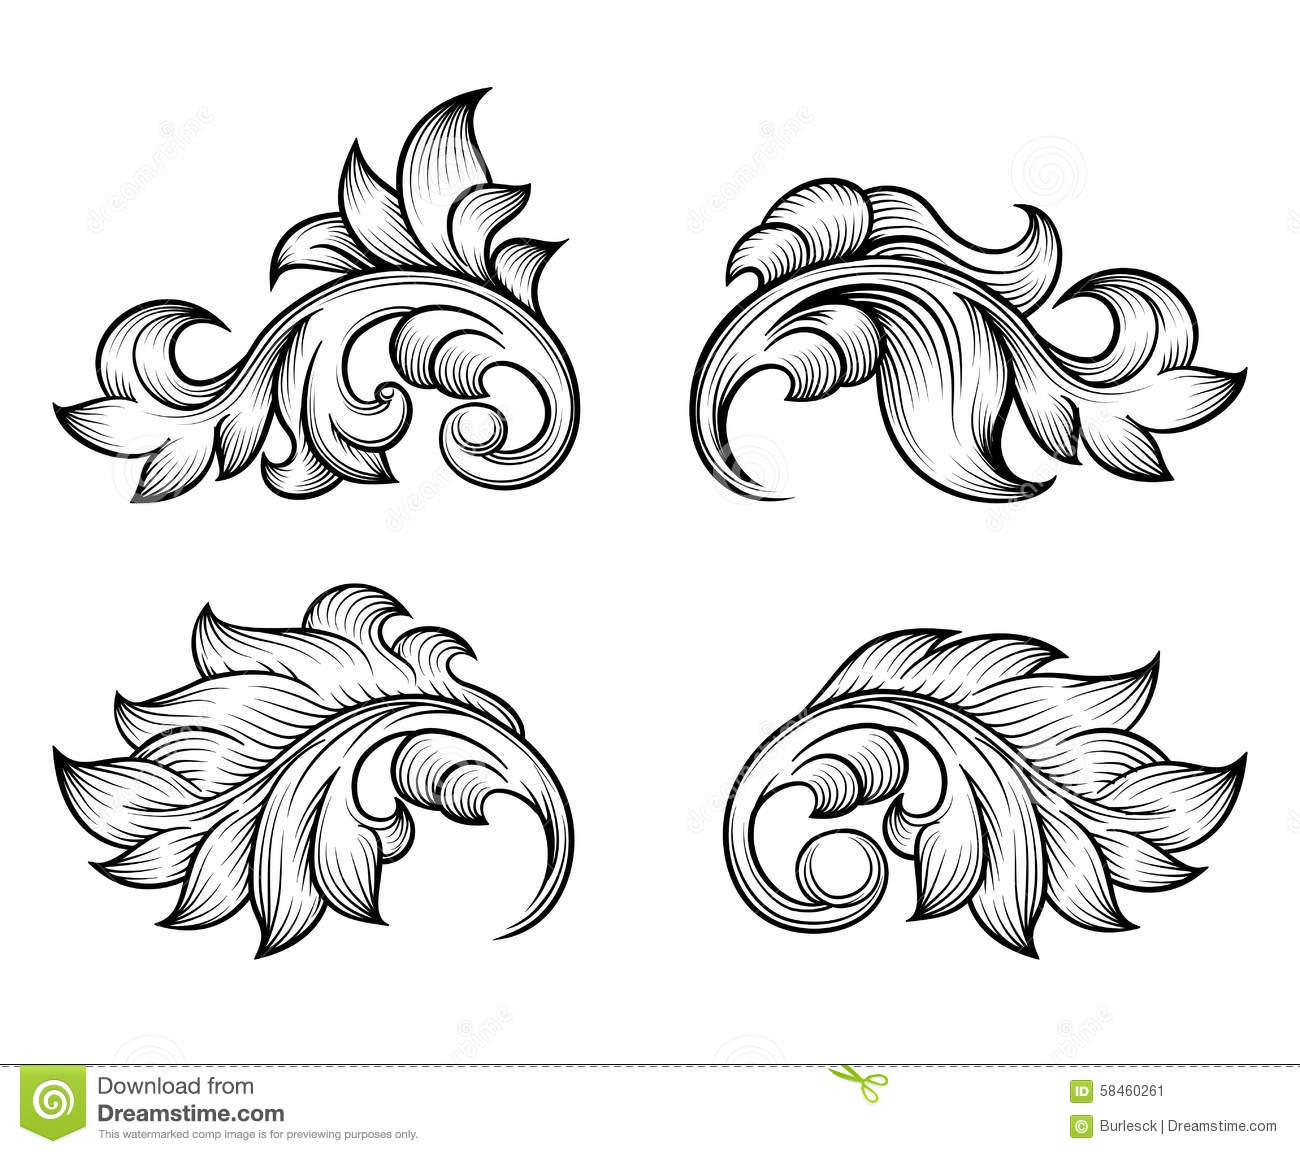 New School Tattoo Flash further 3 Bedroom House Floor Plans In Kenya also Stock Photo Leisure Travel Recreation Icon Set Image22760060 in addition Stock Illustration Sketch Design House Vector Image Illustration Can Be Scaled To Any Size Loss Resolution Image Will Image41895001 additionally Stock Illustration Vintage Baroque Scroll Leaf Set Engraving Style Element Ornate Decoration Filigree Floral Vector Illustration Image58460261. on 3d house plans